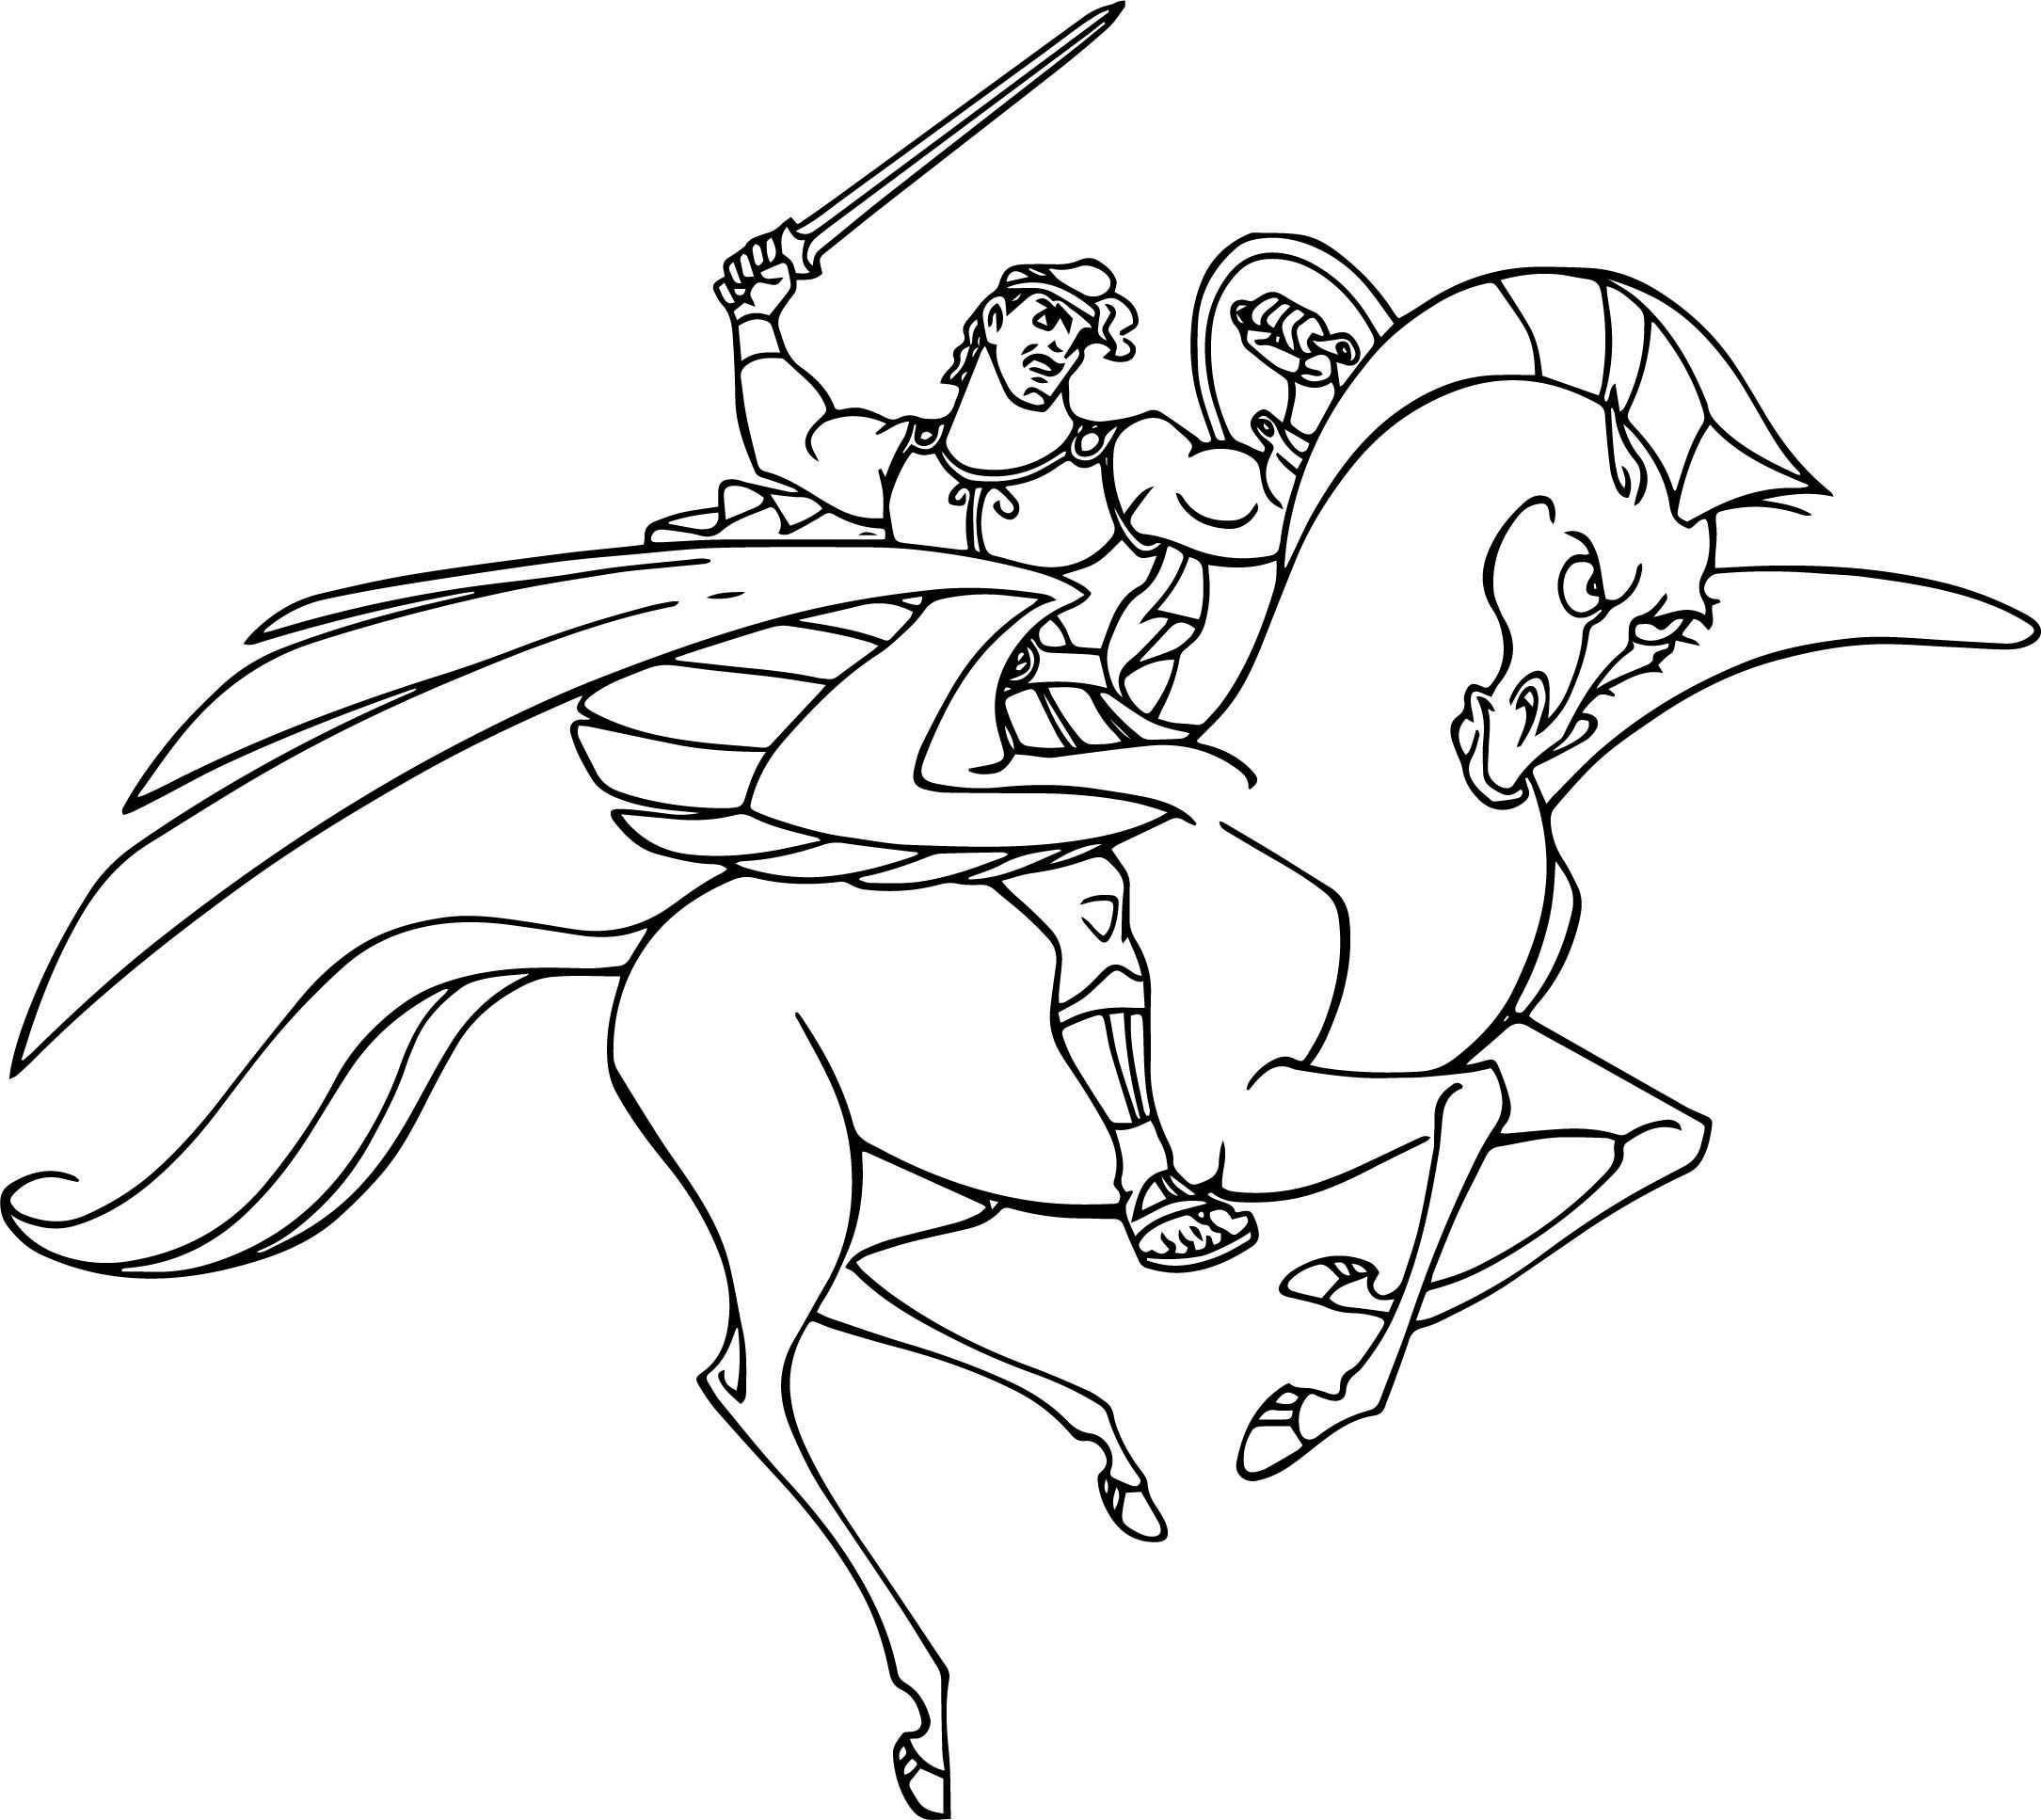 Unique Disney Hercules Pegasus Coloring Pages Design